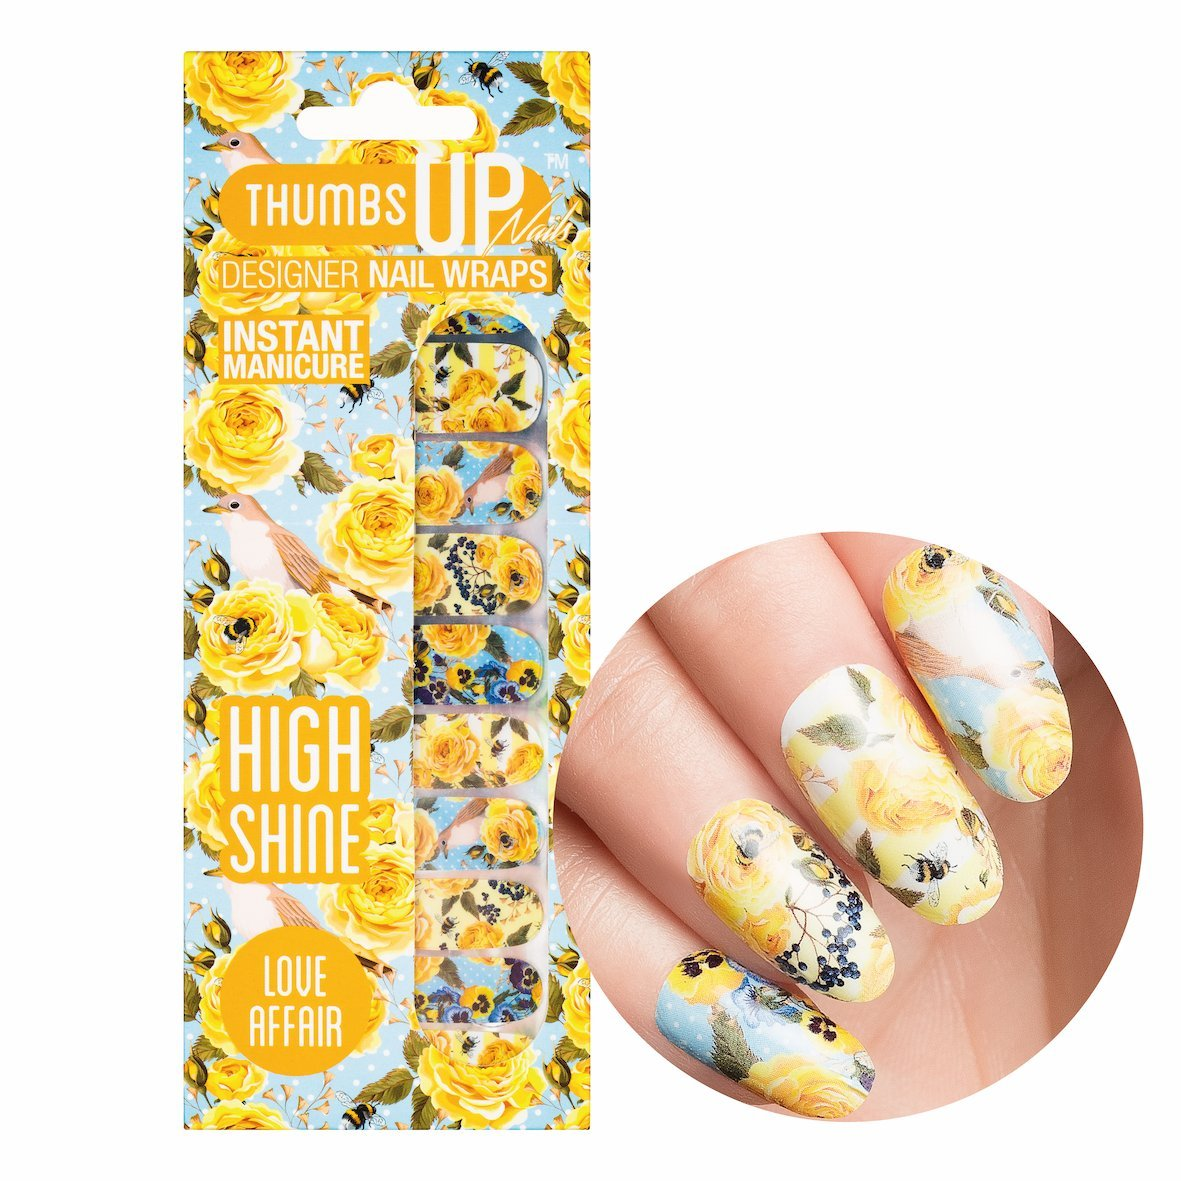 ThumbsUp Nails Love Affair Vintage Floral Nail Wraps / Self-adhesive / Nail Foil Polish Strips / Full Coverage Nail Art Stickers / 20 Wraps Per Pack